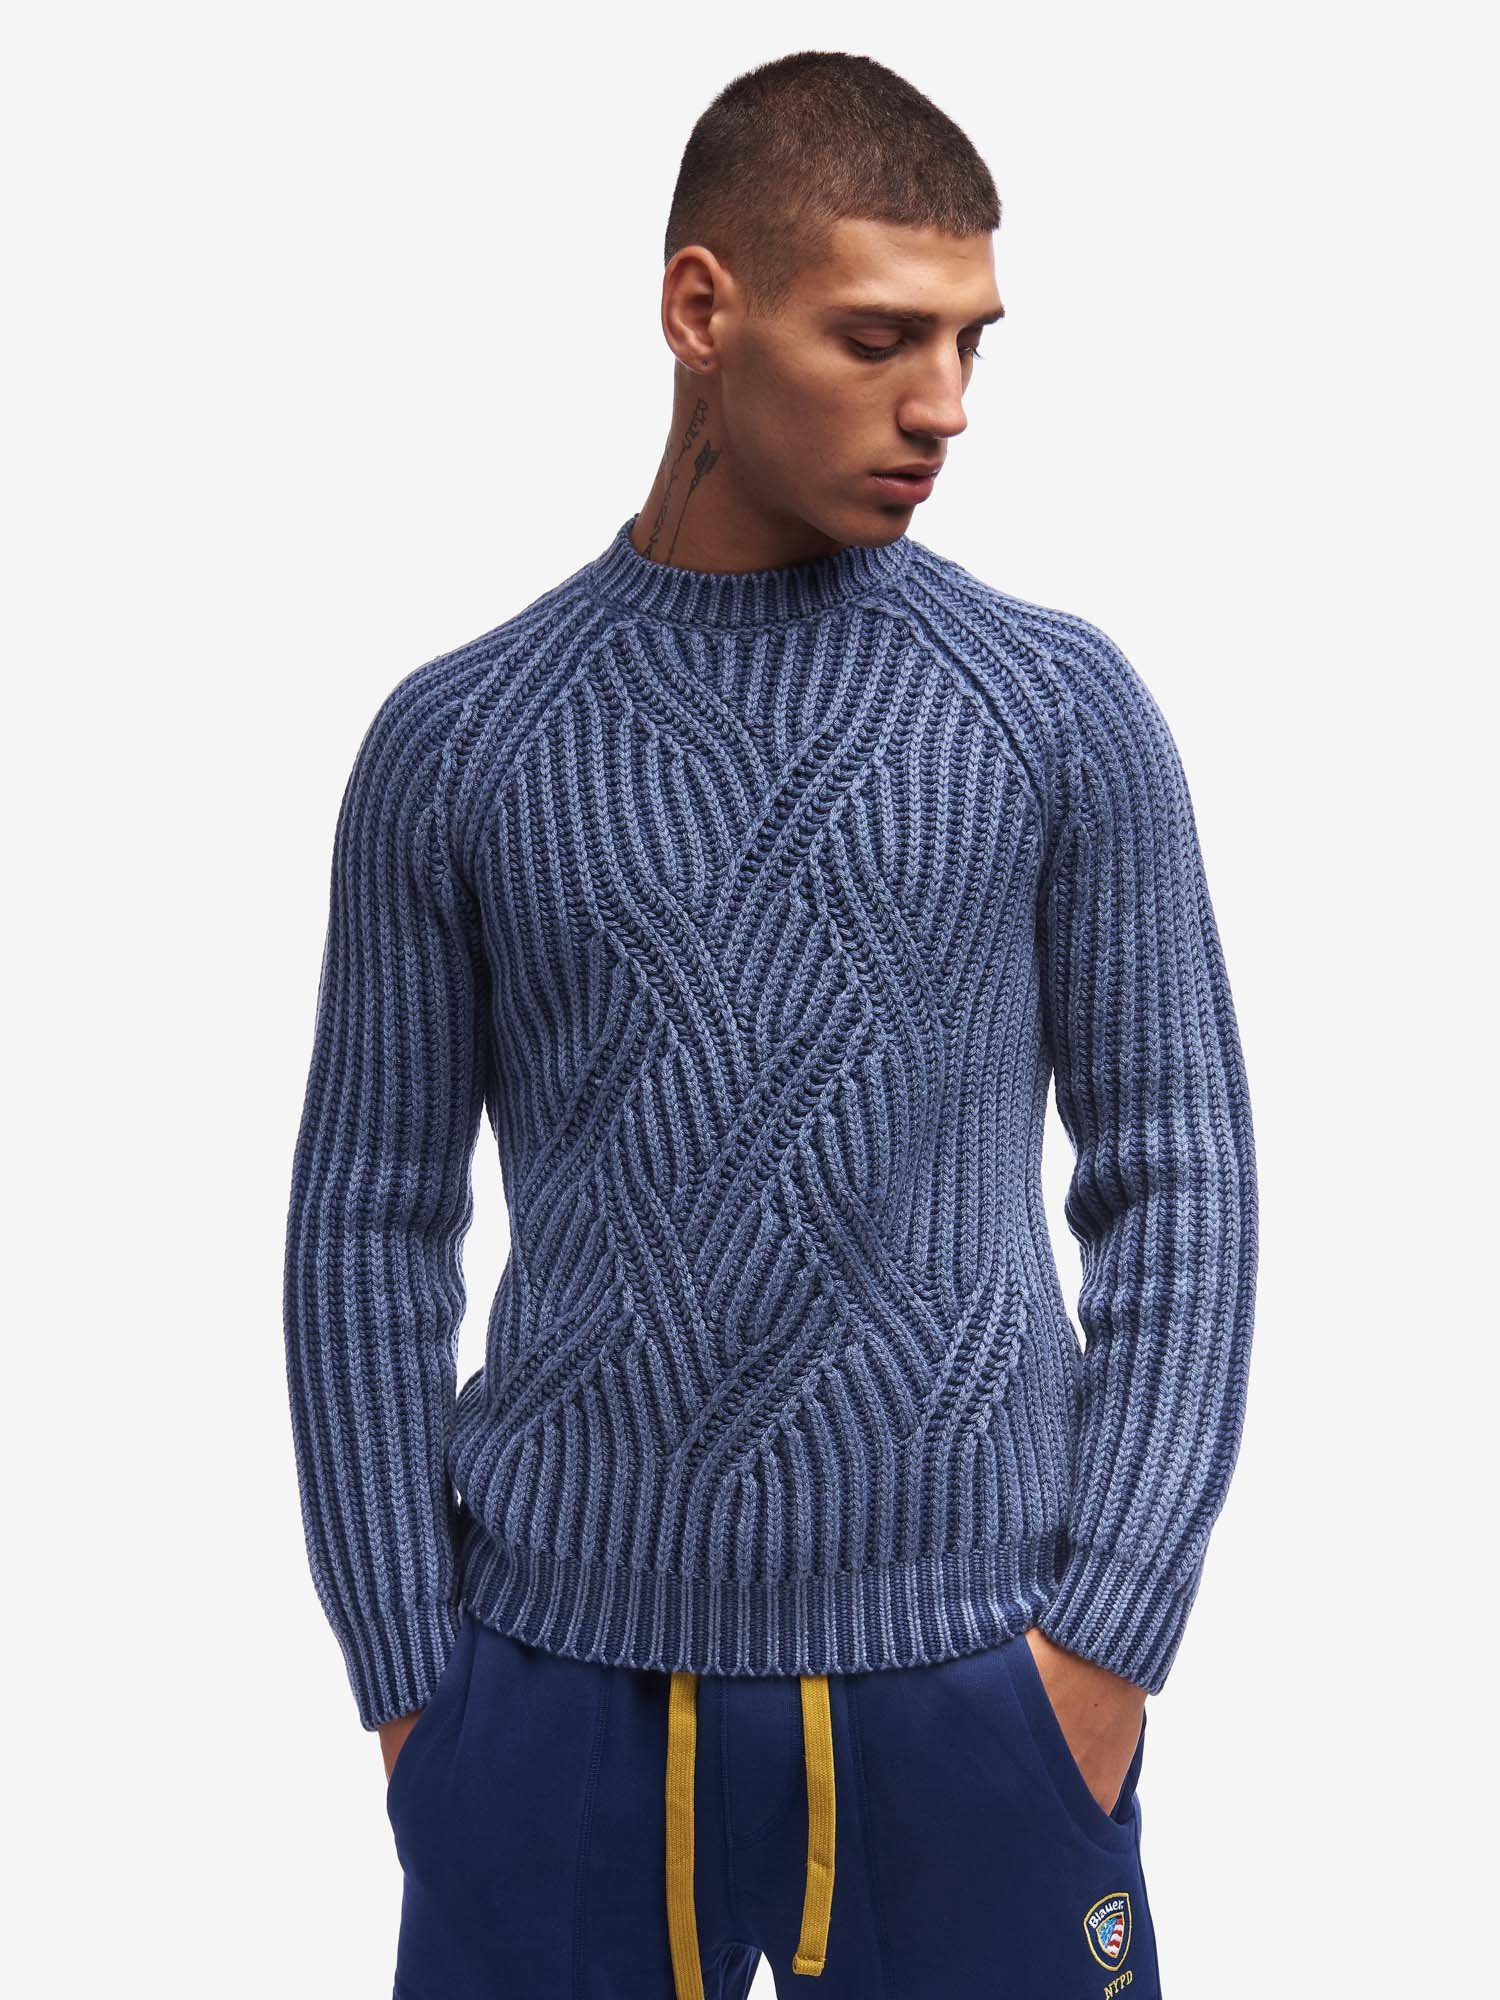 CREW NECK CABLE KNIT SWEATER - Blauer